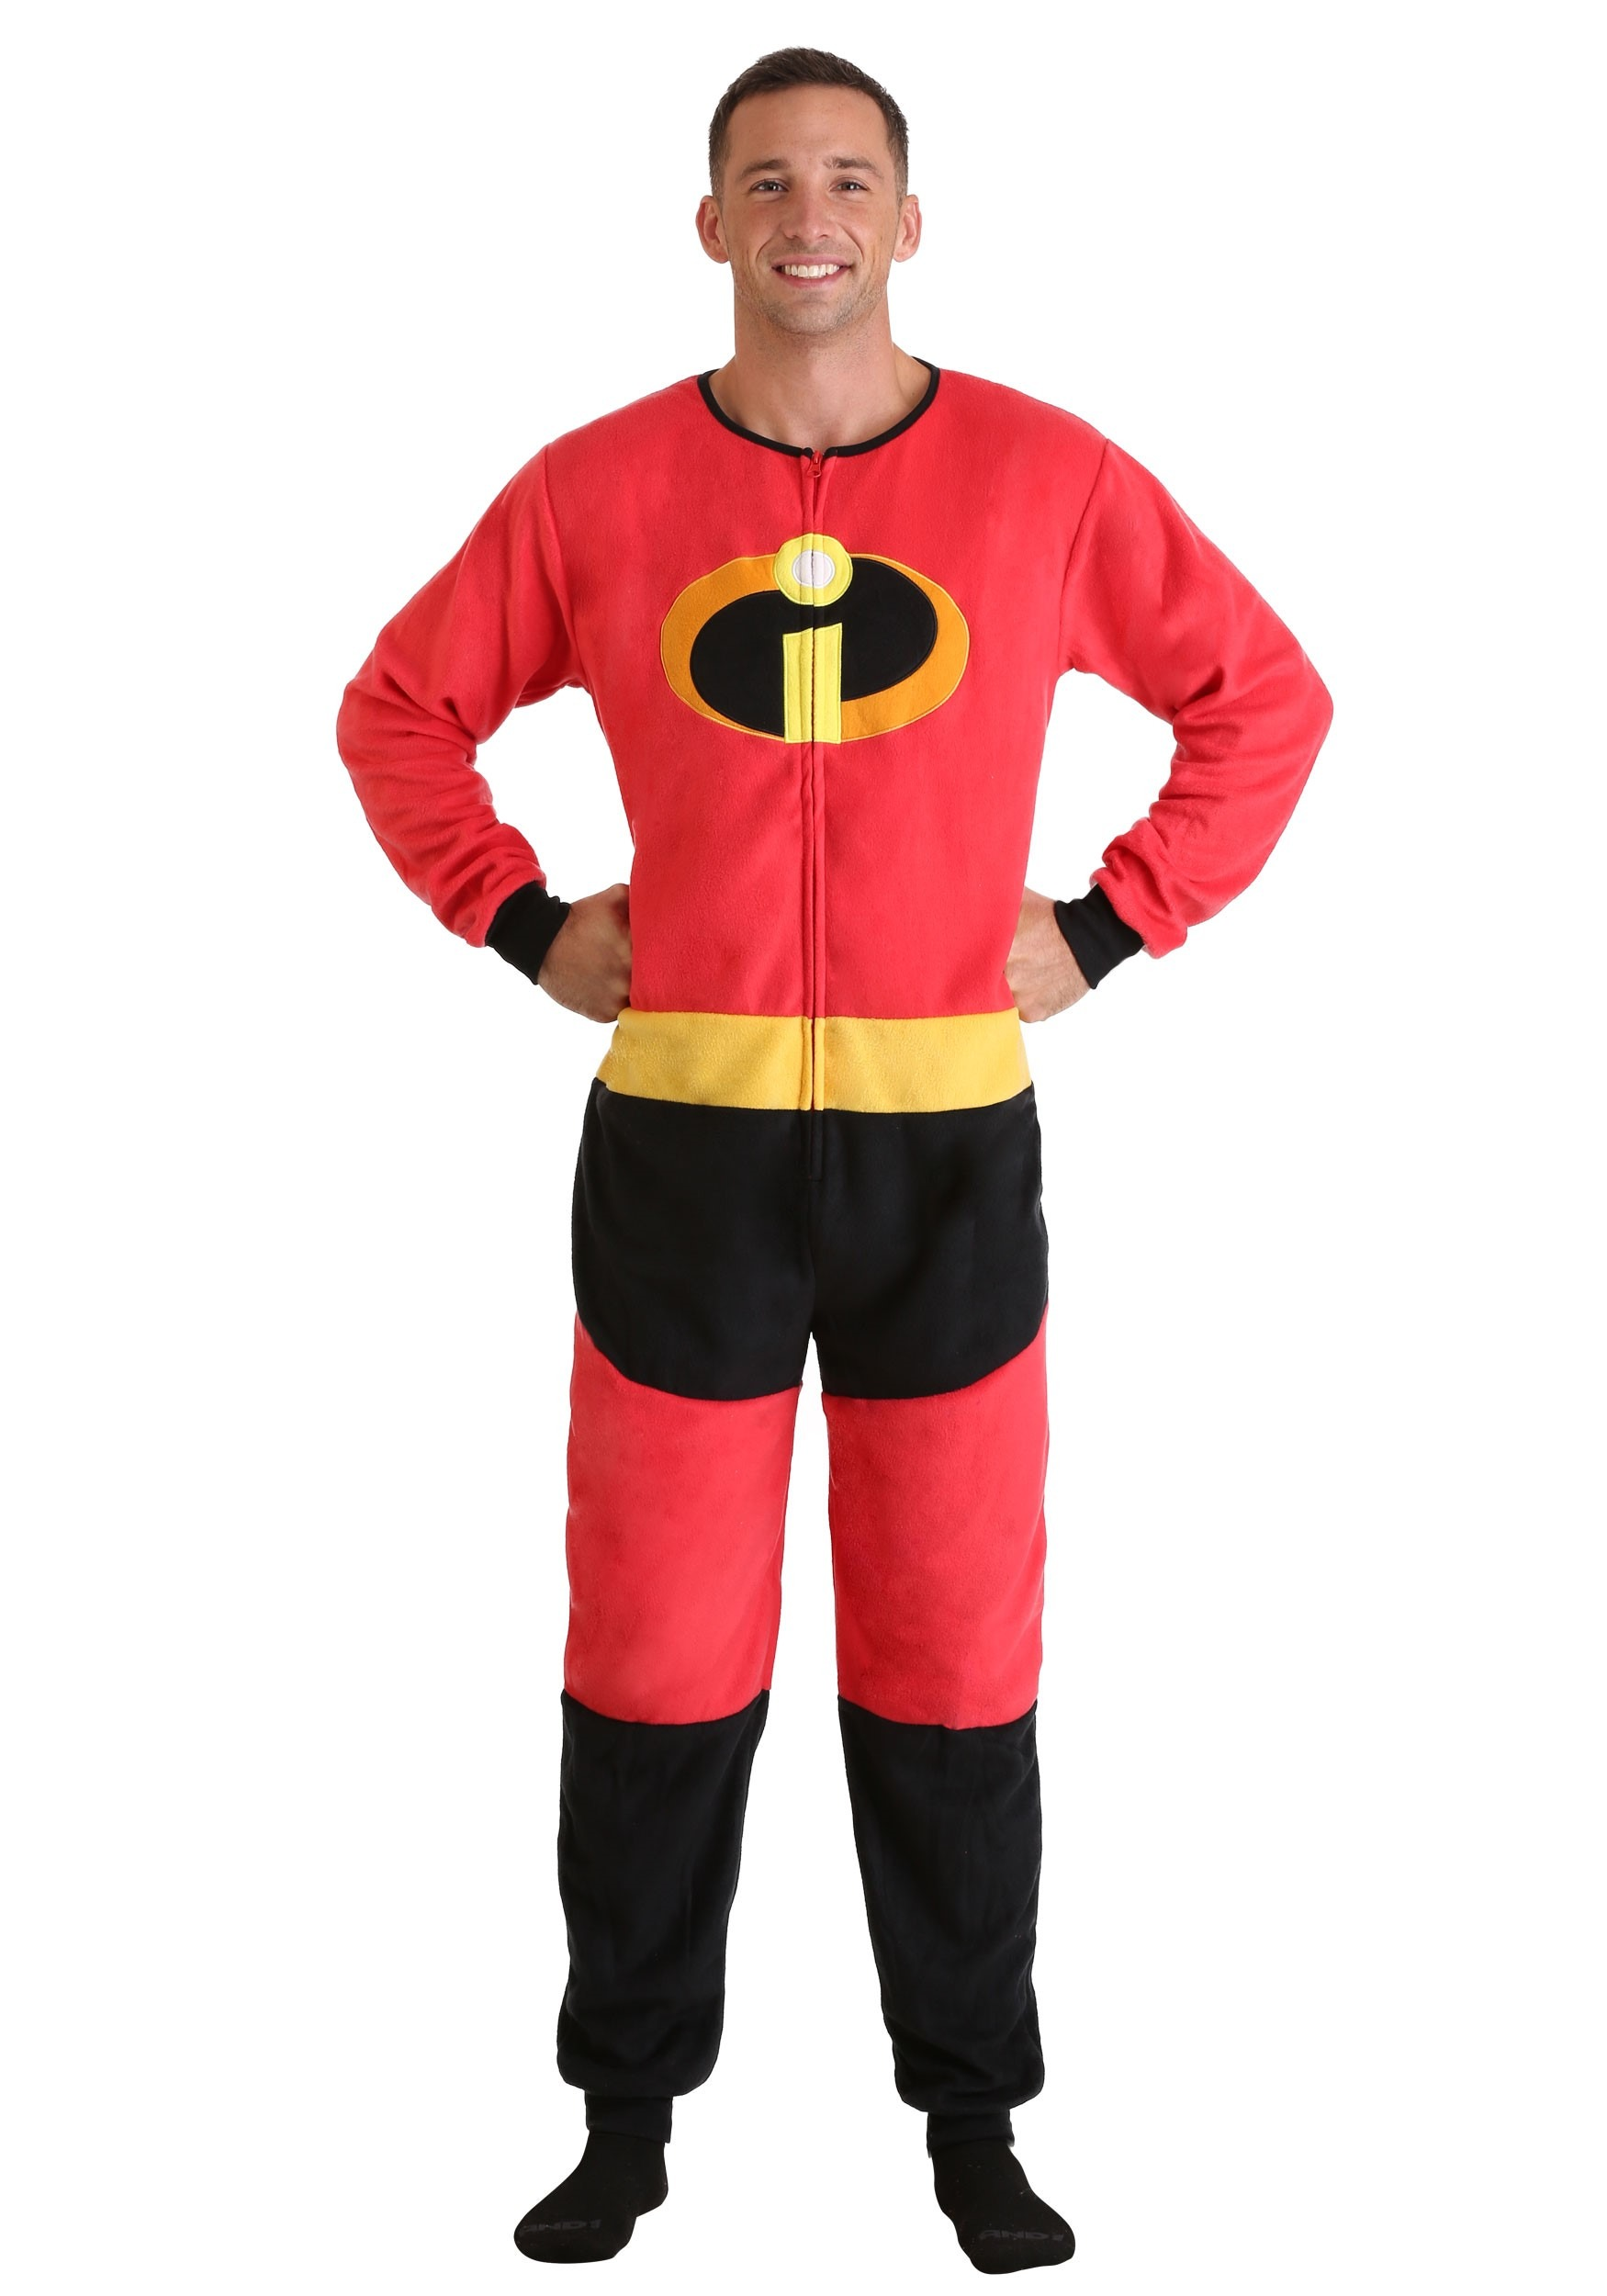 The Incredibles Mr. Incredible Union Suit for Adults